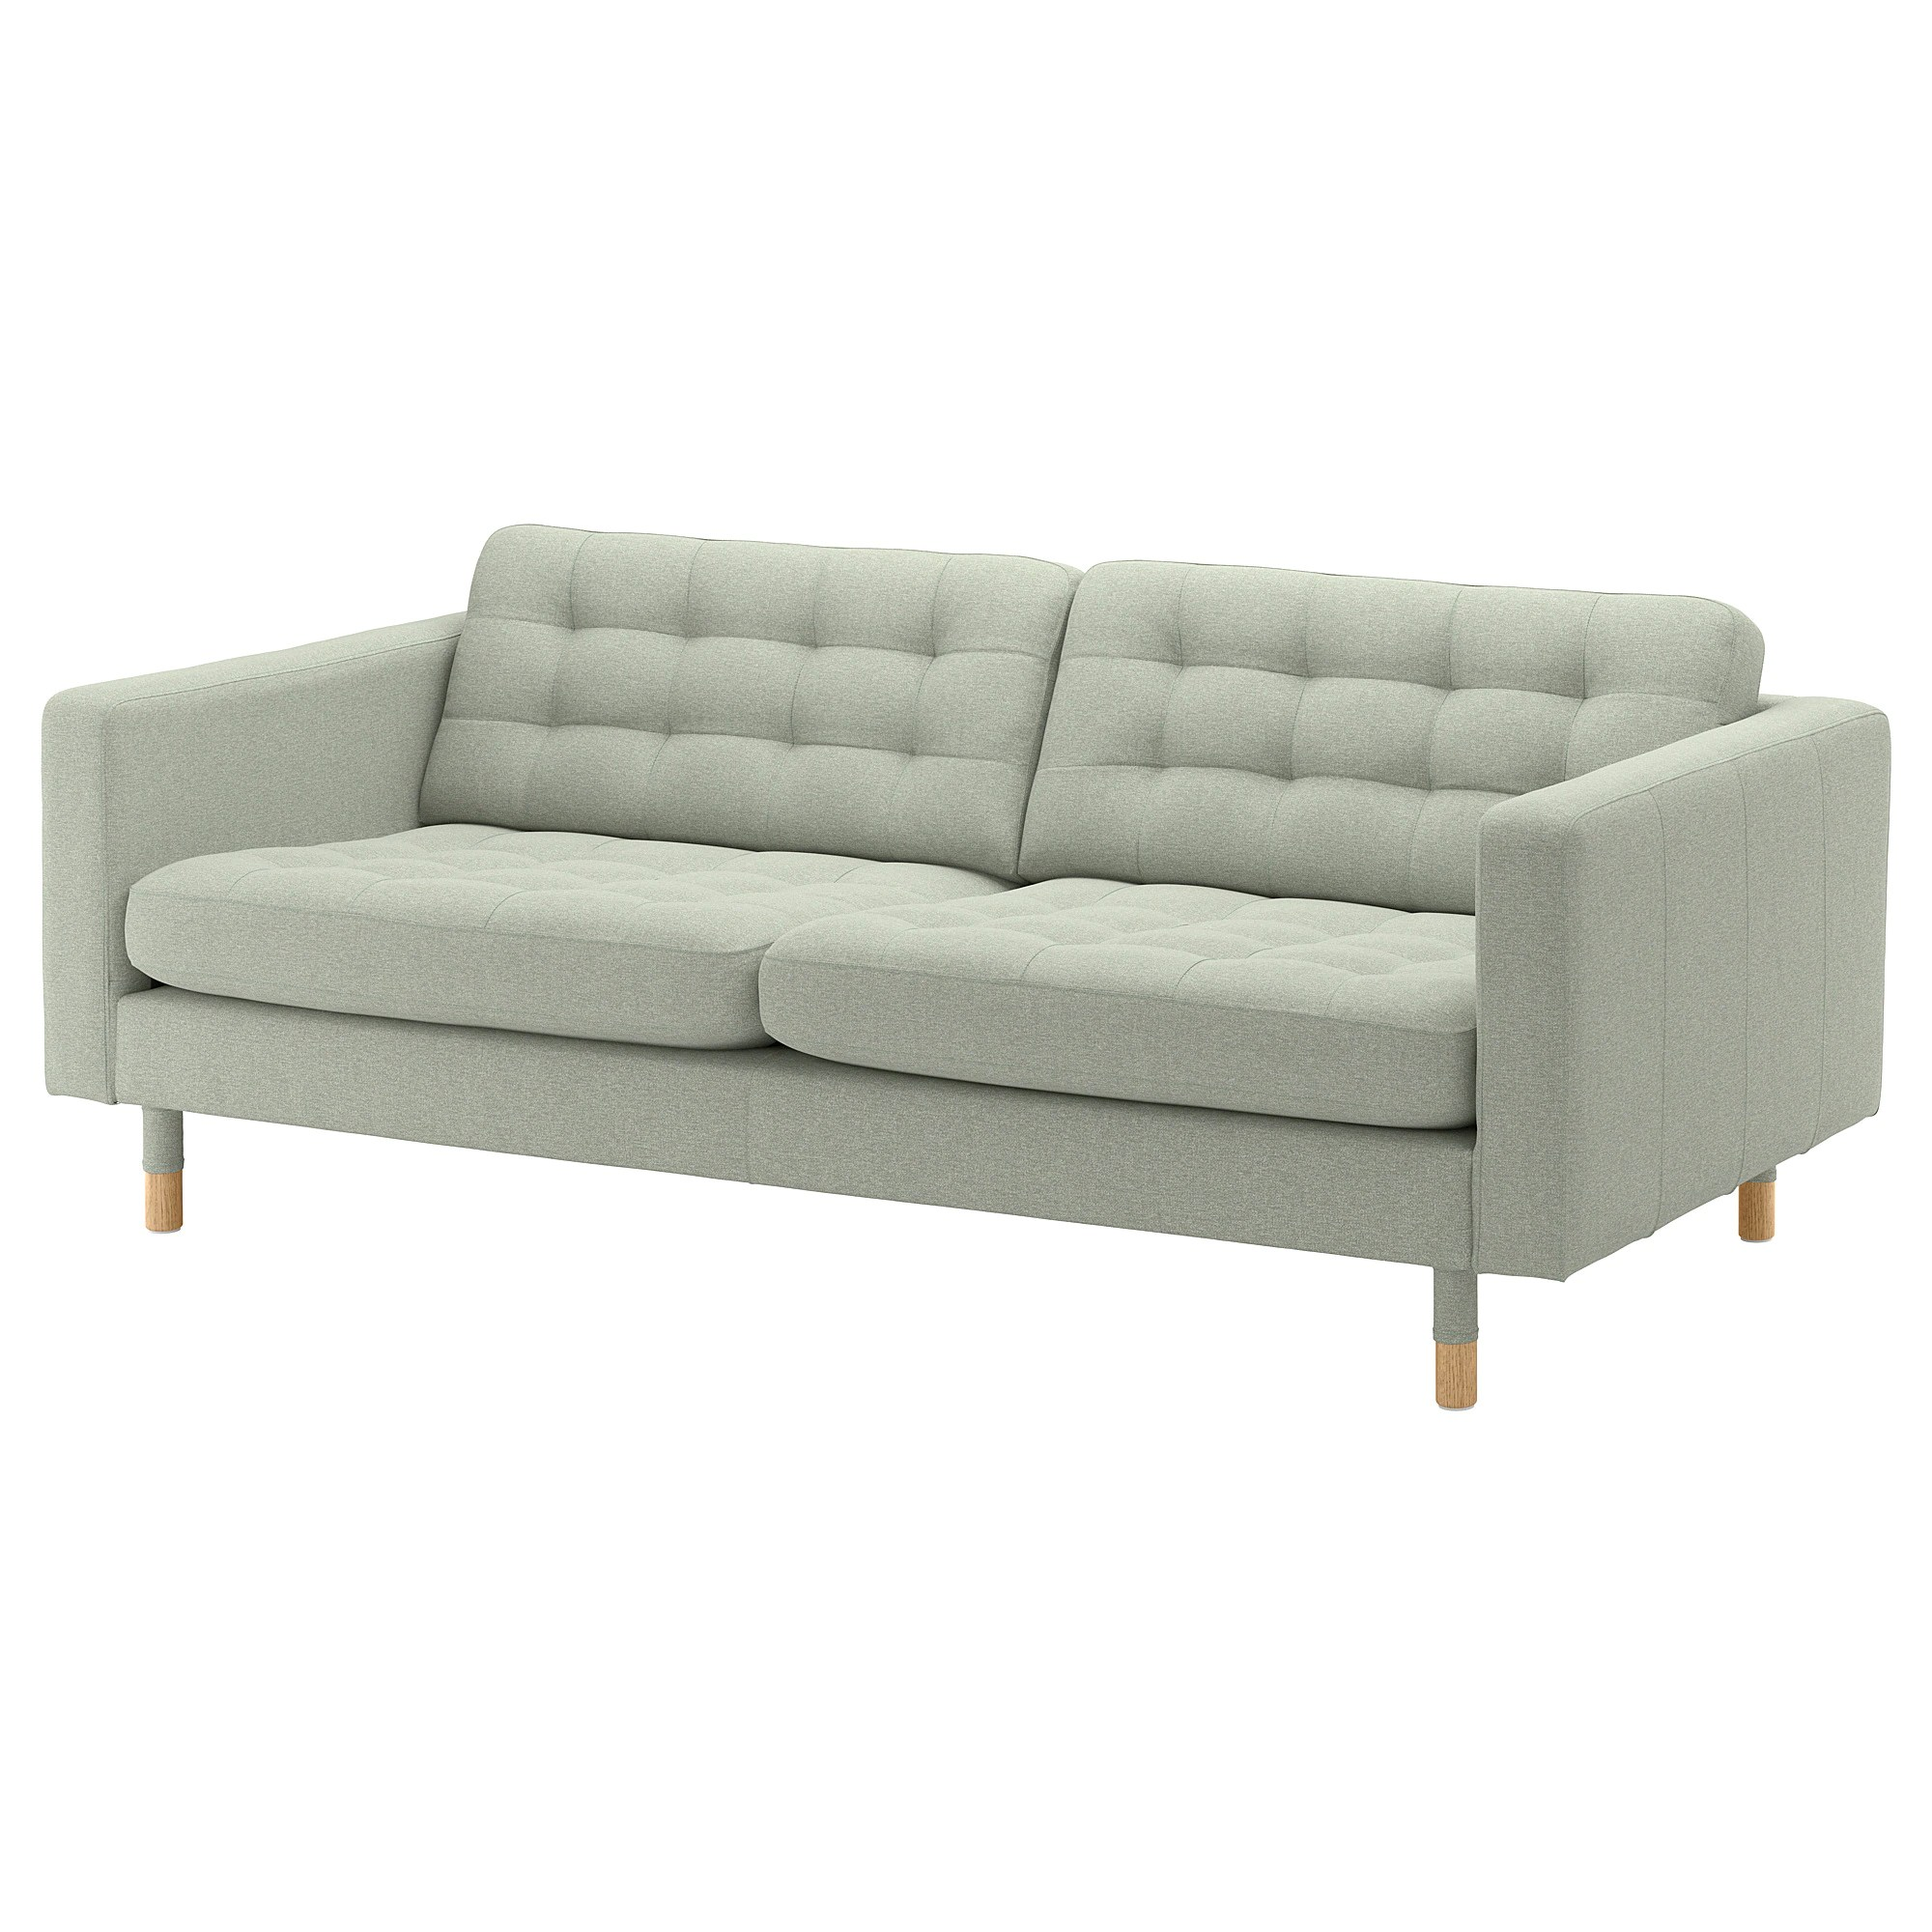 Sofa Ikea Landskrona Sofa Gunnared Light Green Wood